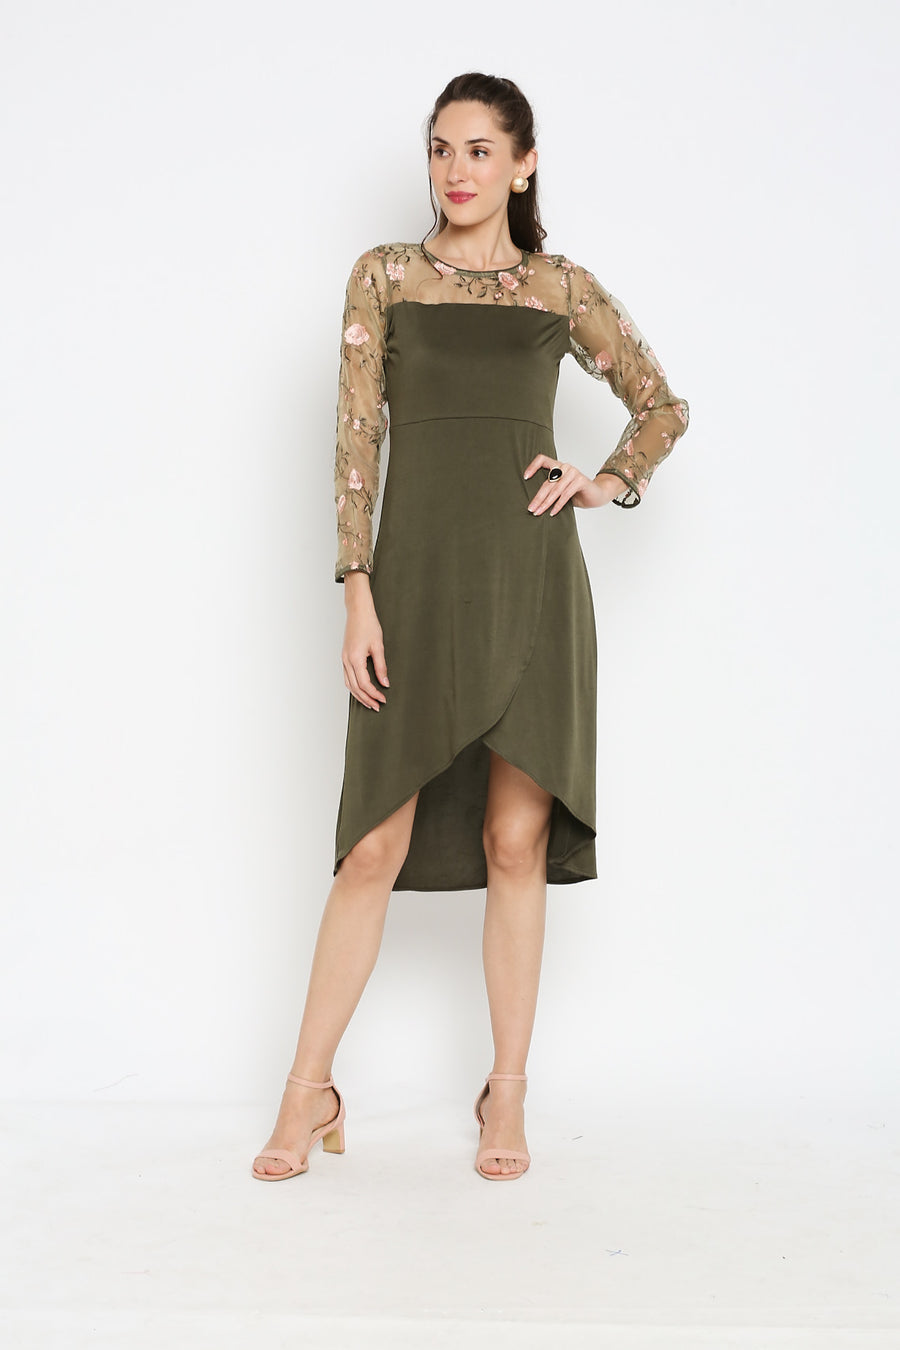 IRA SOLEIL OLIVE GREEN EMBROIDERED FULL SLEEVES DRESS